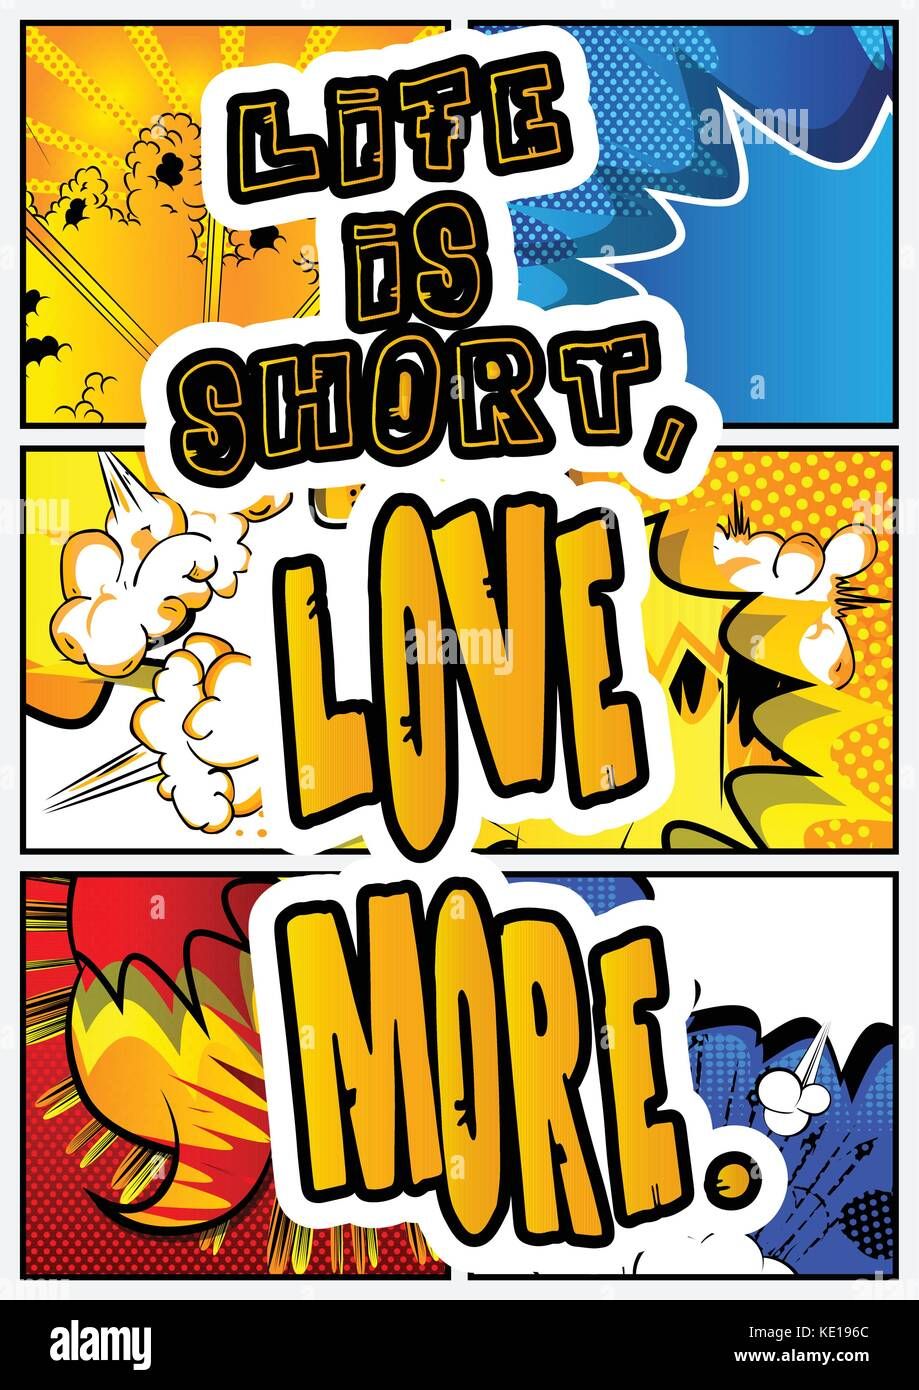 Life is short, love more. Vector illustrated comic book style design. Inspirational, motivational quote. - Stock Vector